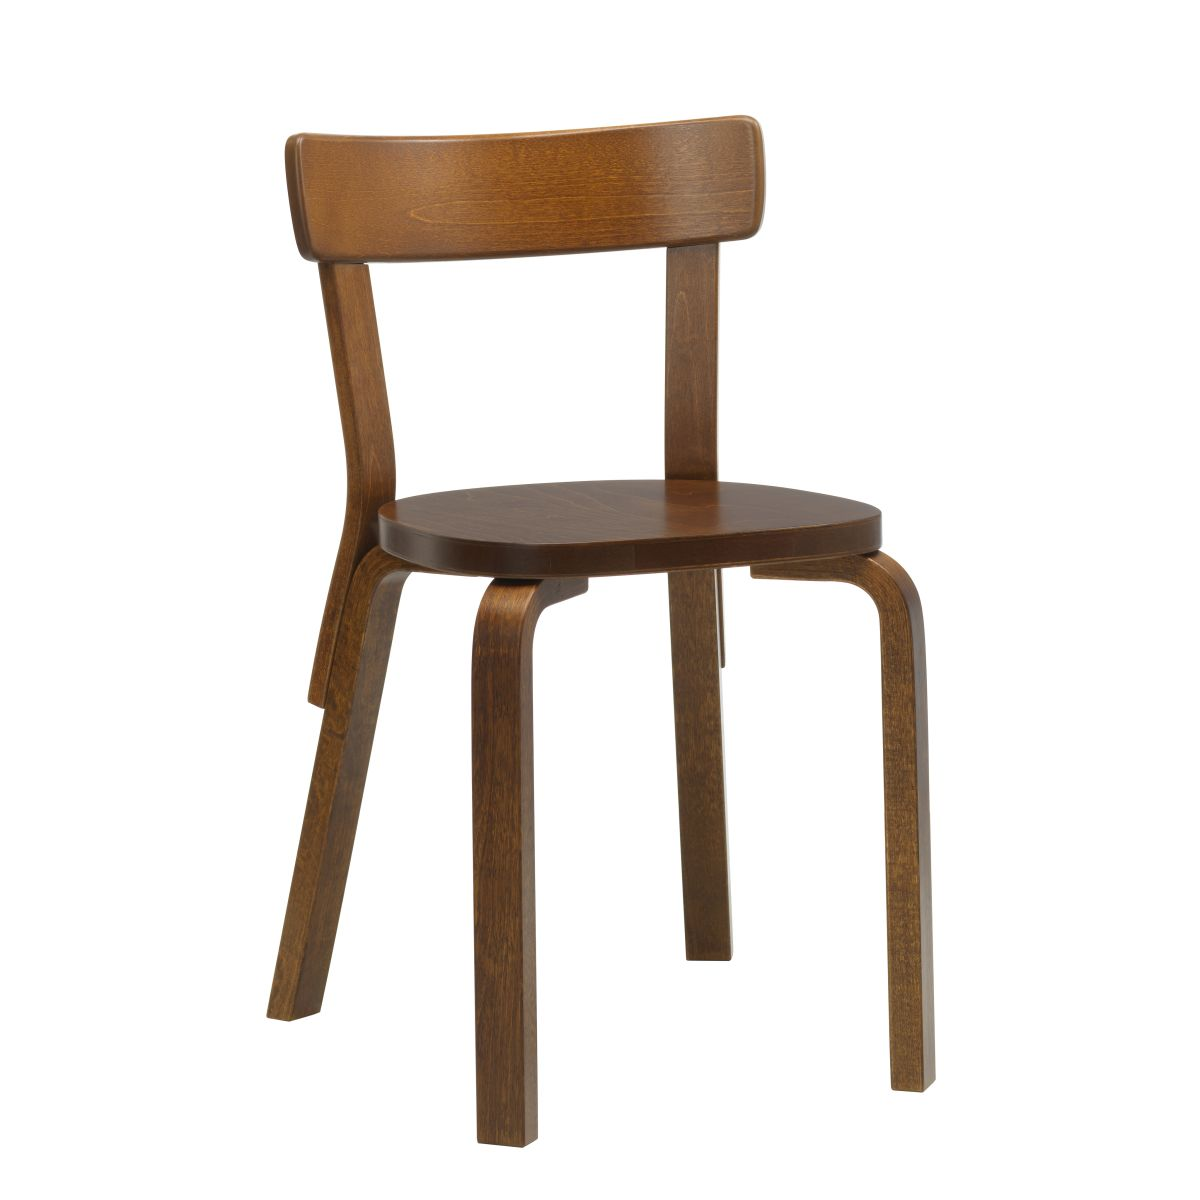 Chair_69_Walnut_Stain_F-2243734